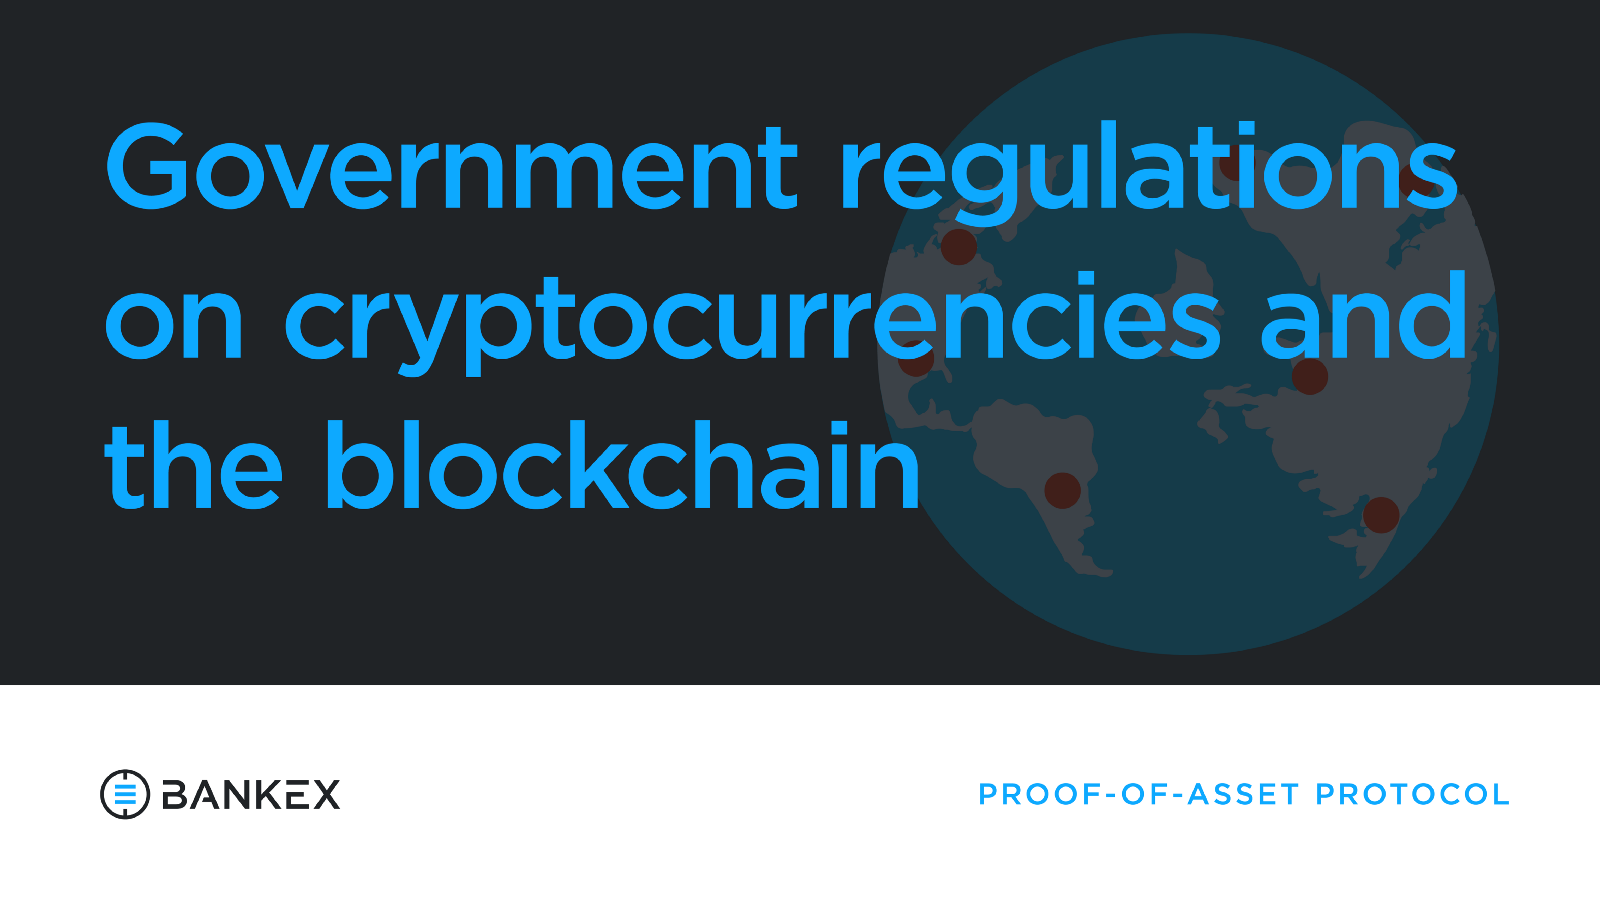 What Do You Know About Government Regulations On Cryptocurrencies And The Blockchain Technology